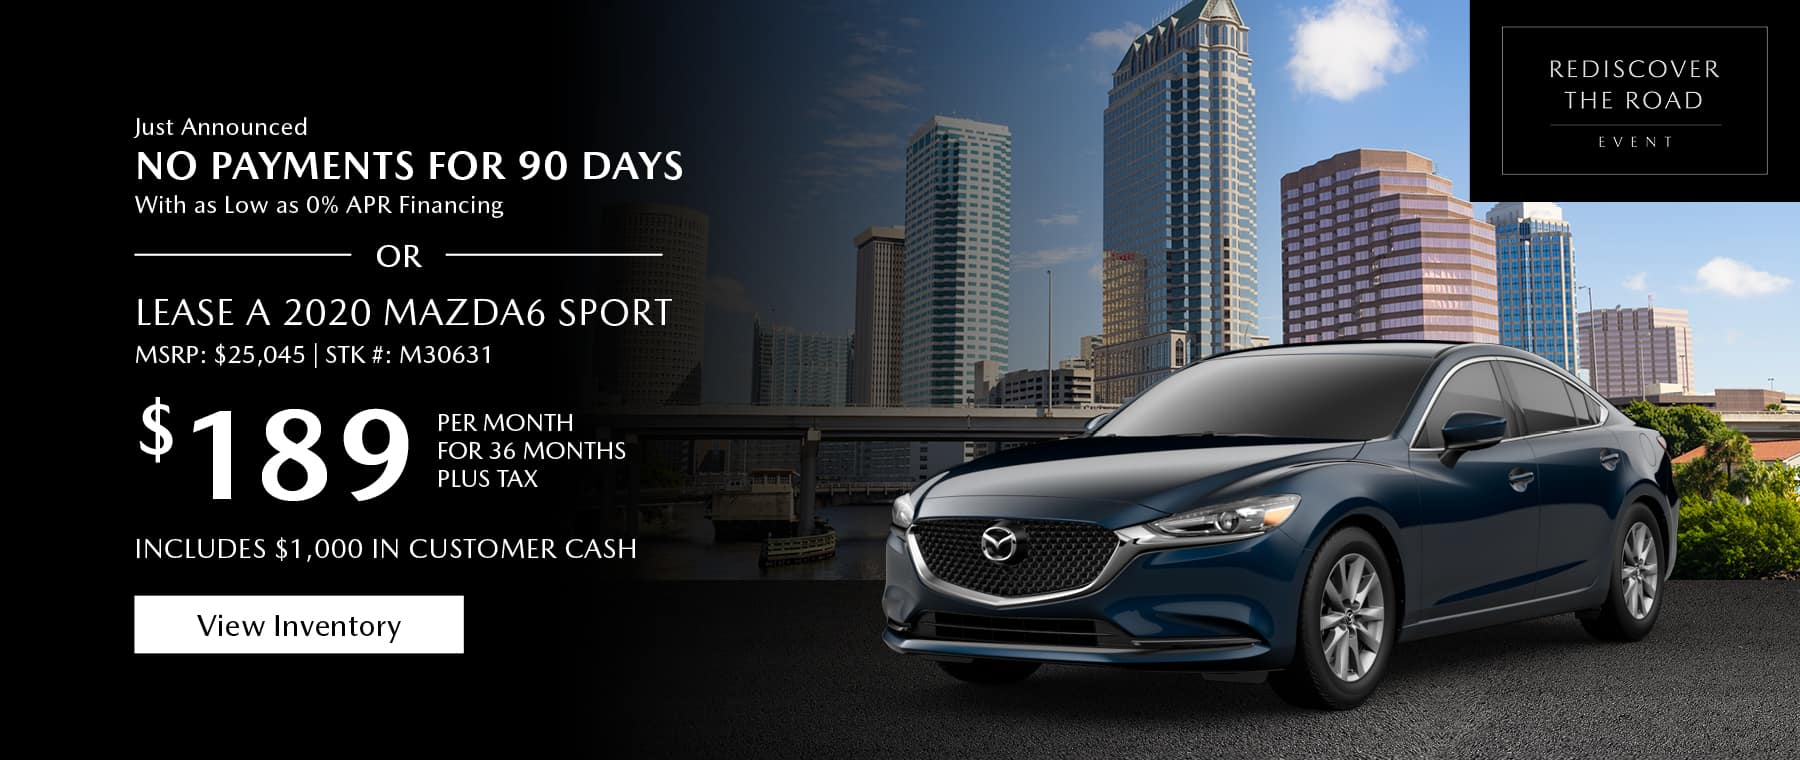 Just Announced, No payments for 90 days with as low as %0 APR financing, or lease the 2020 Mazda6 for $189 per month, plus tax for 36 months. Includes $1,000 in customer cash. Click or tap here to view our inventory.